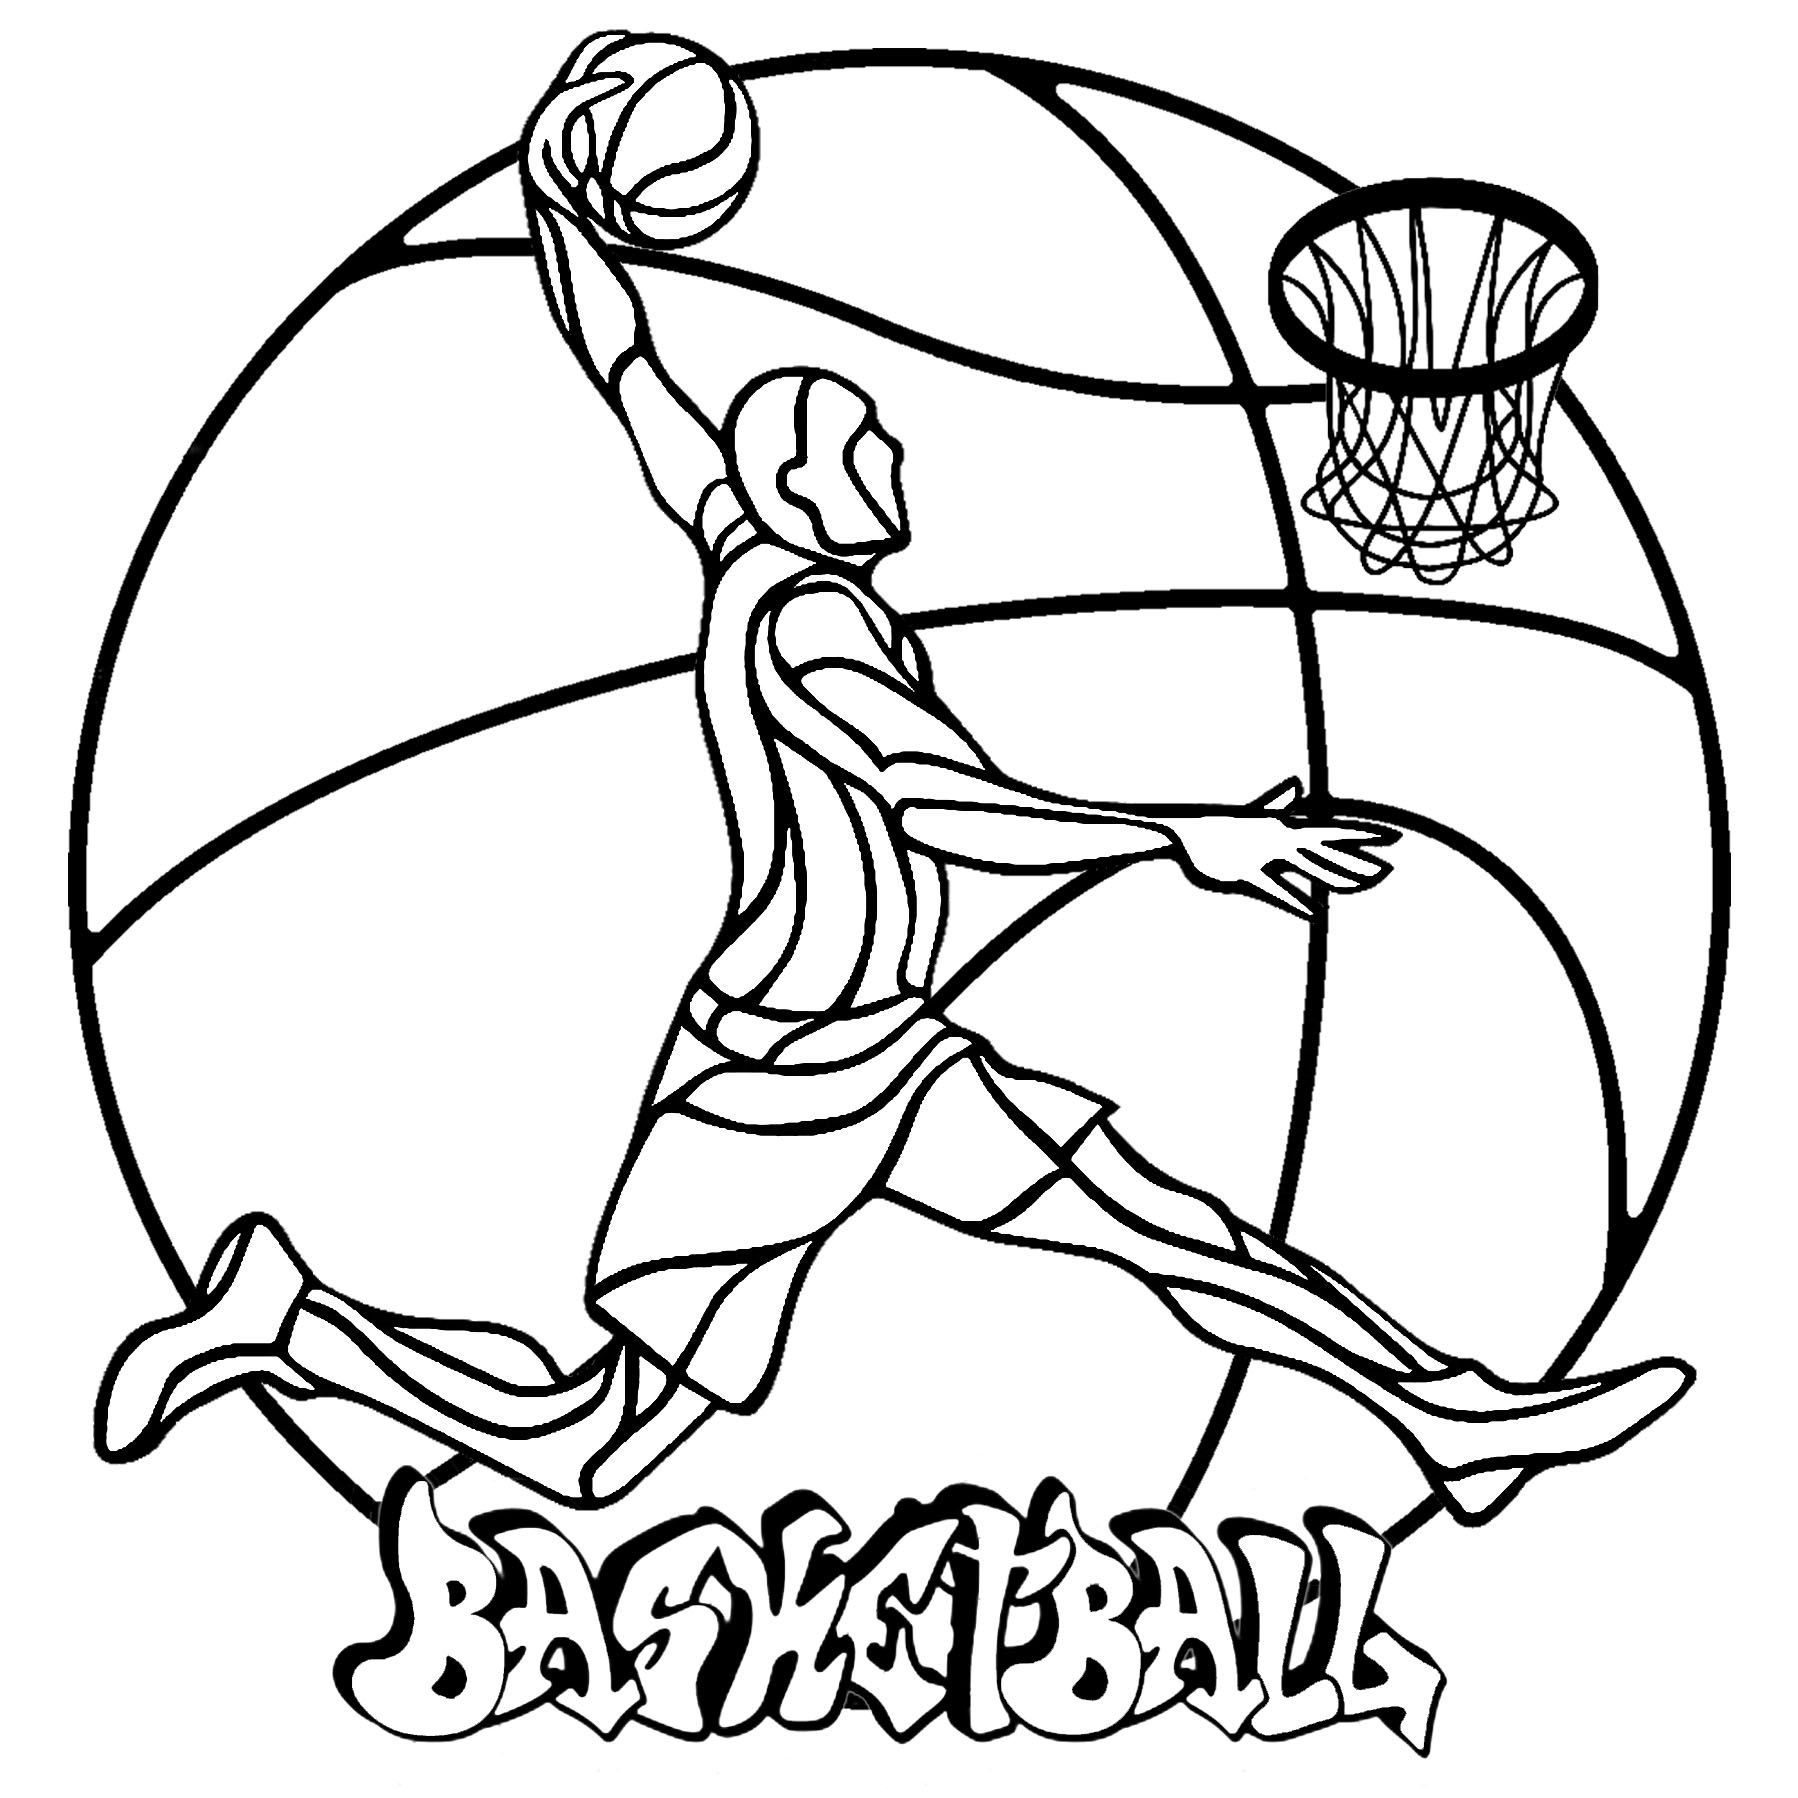 A simple Mandala (in fact a Basketball) with a player and the graffiti 'Basketball'